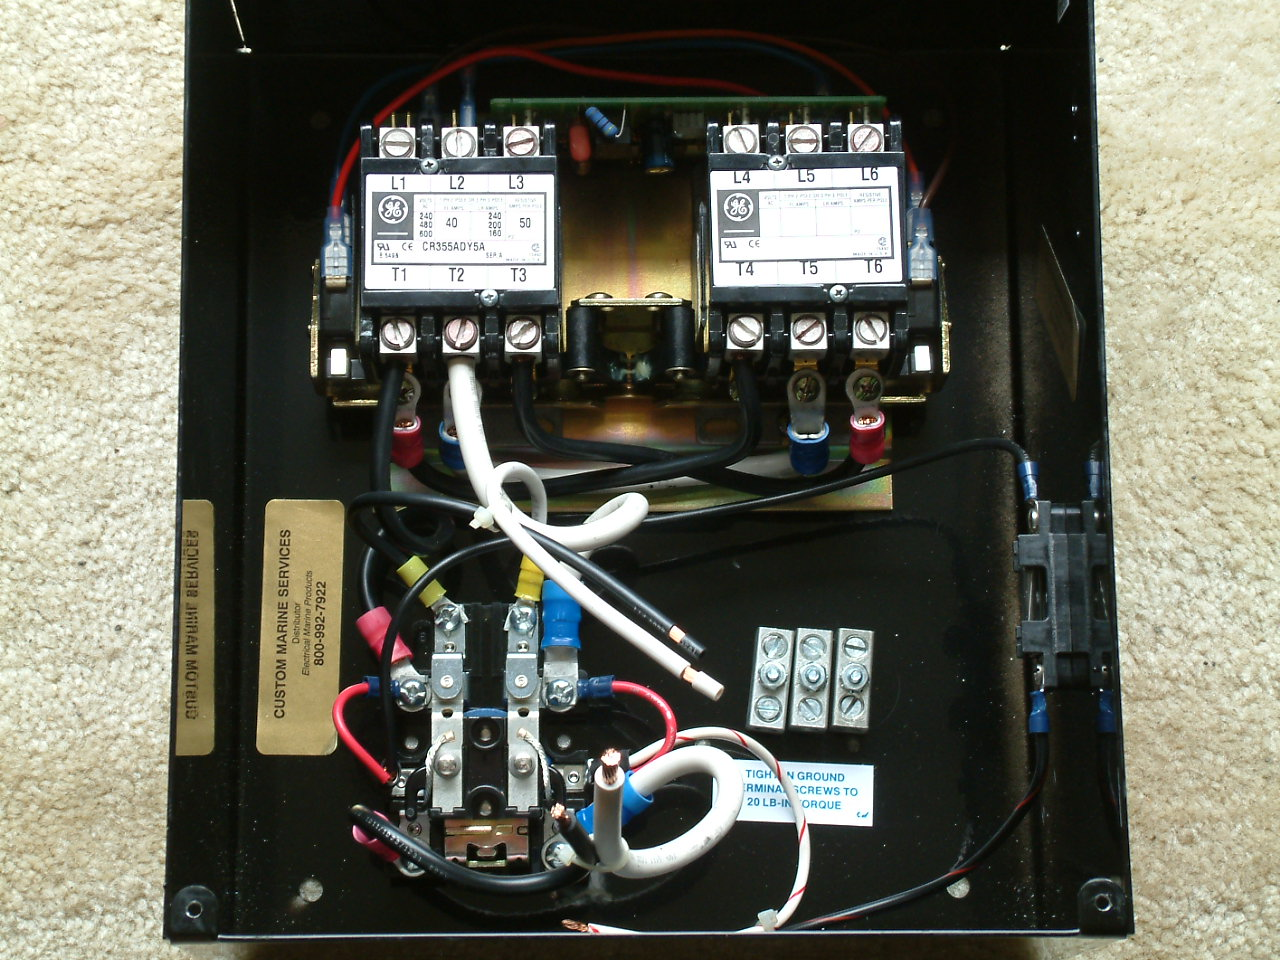 Custom Marine Services Quick Source Todd Engineering Automatic 120vac Wiring Click To Enlarge